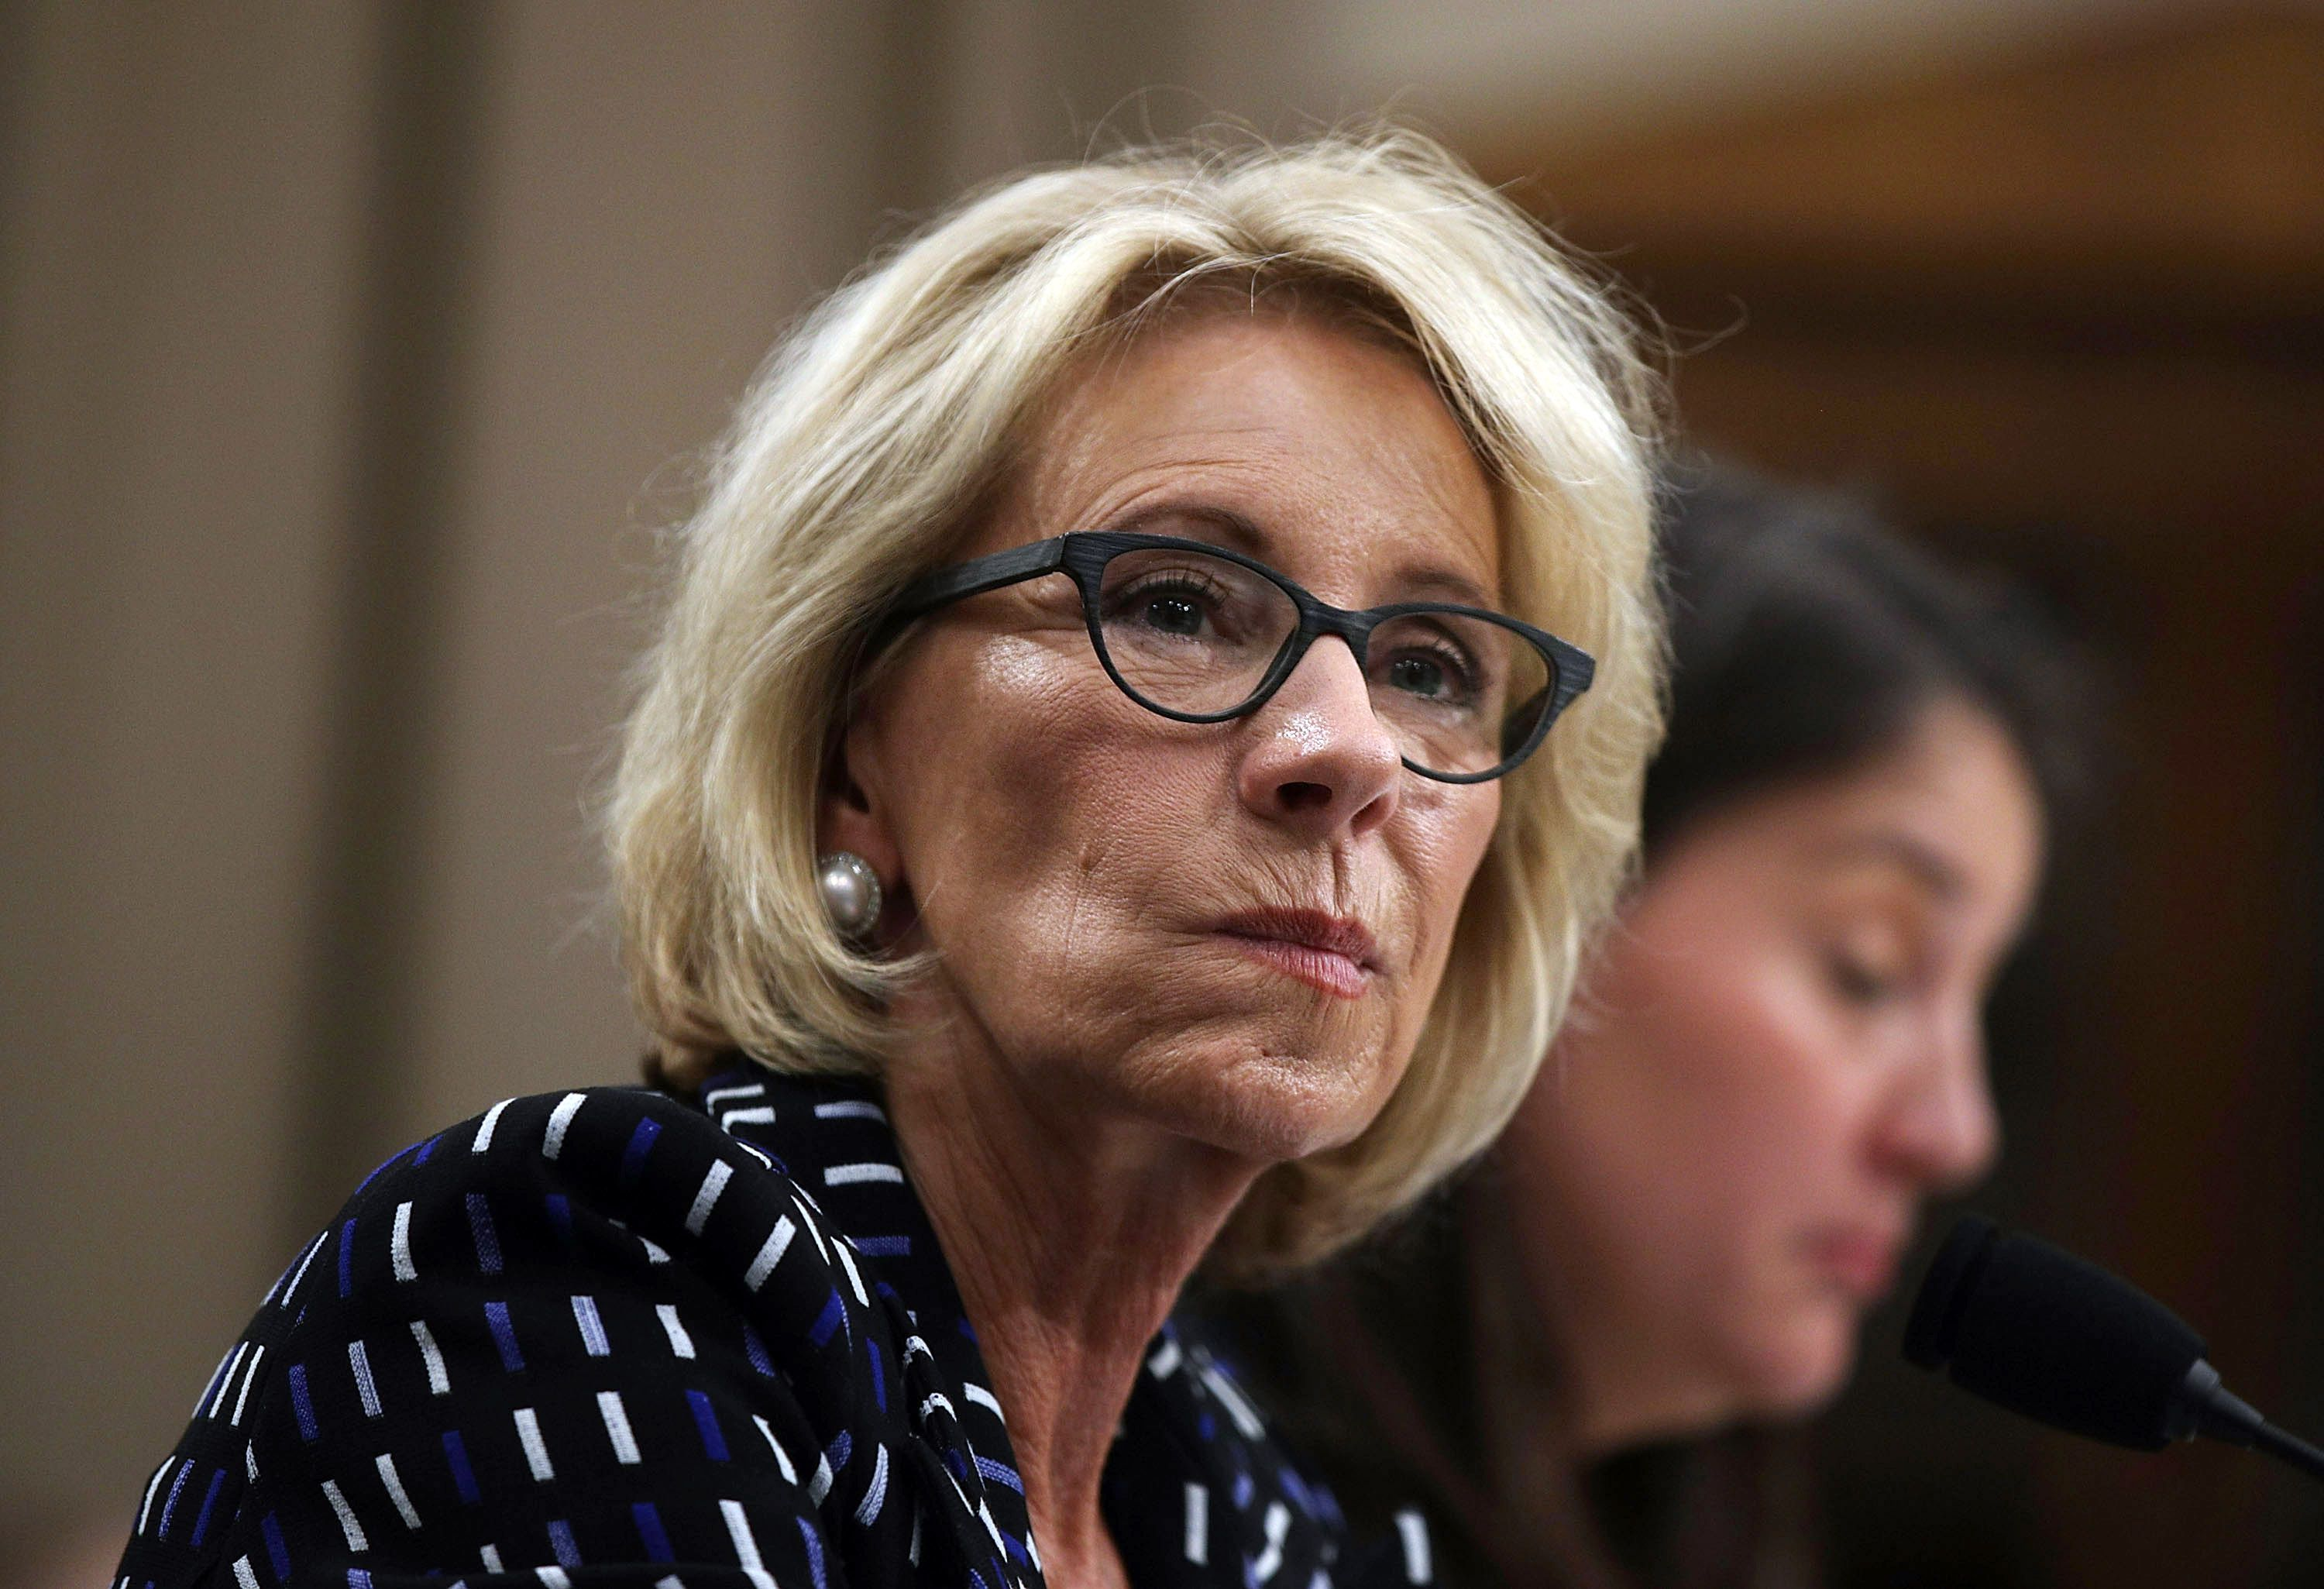 Report: DeVos dismantles team probing fraud at for-profit colleges - Axios